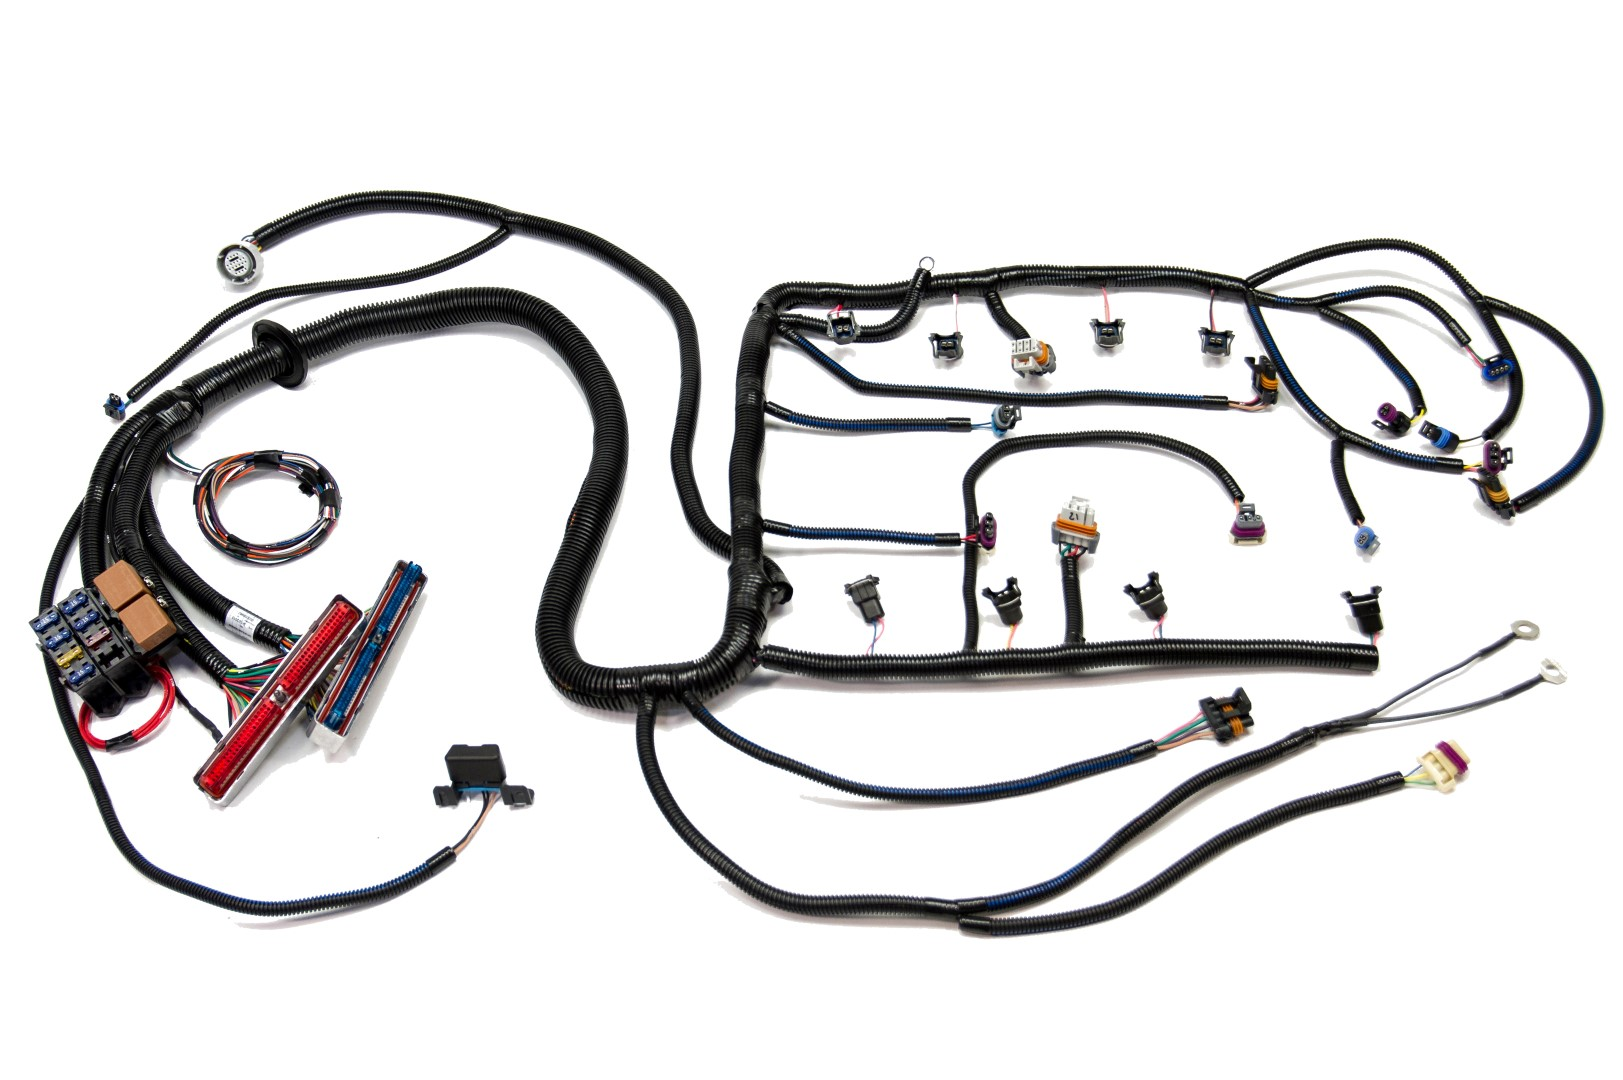 Ls1 6 0 Wiring Harness Diagram And Ebooks Ford Standalone Gm Engine Library Rh 17 Codingcommunity De 53